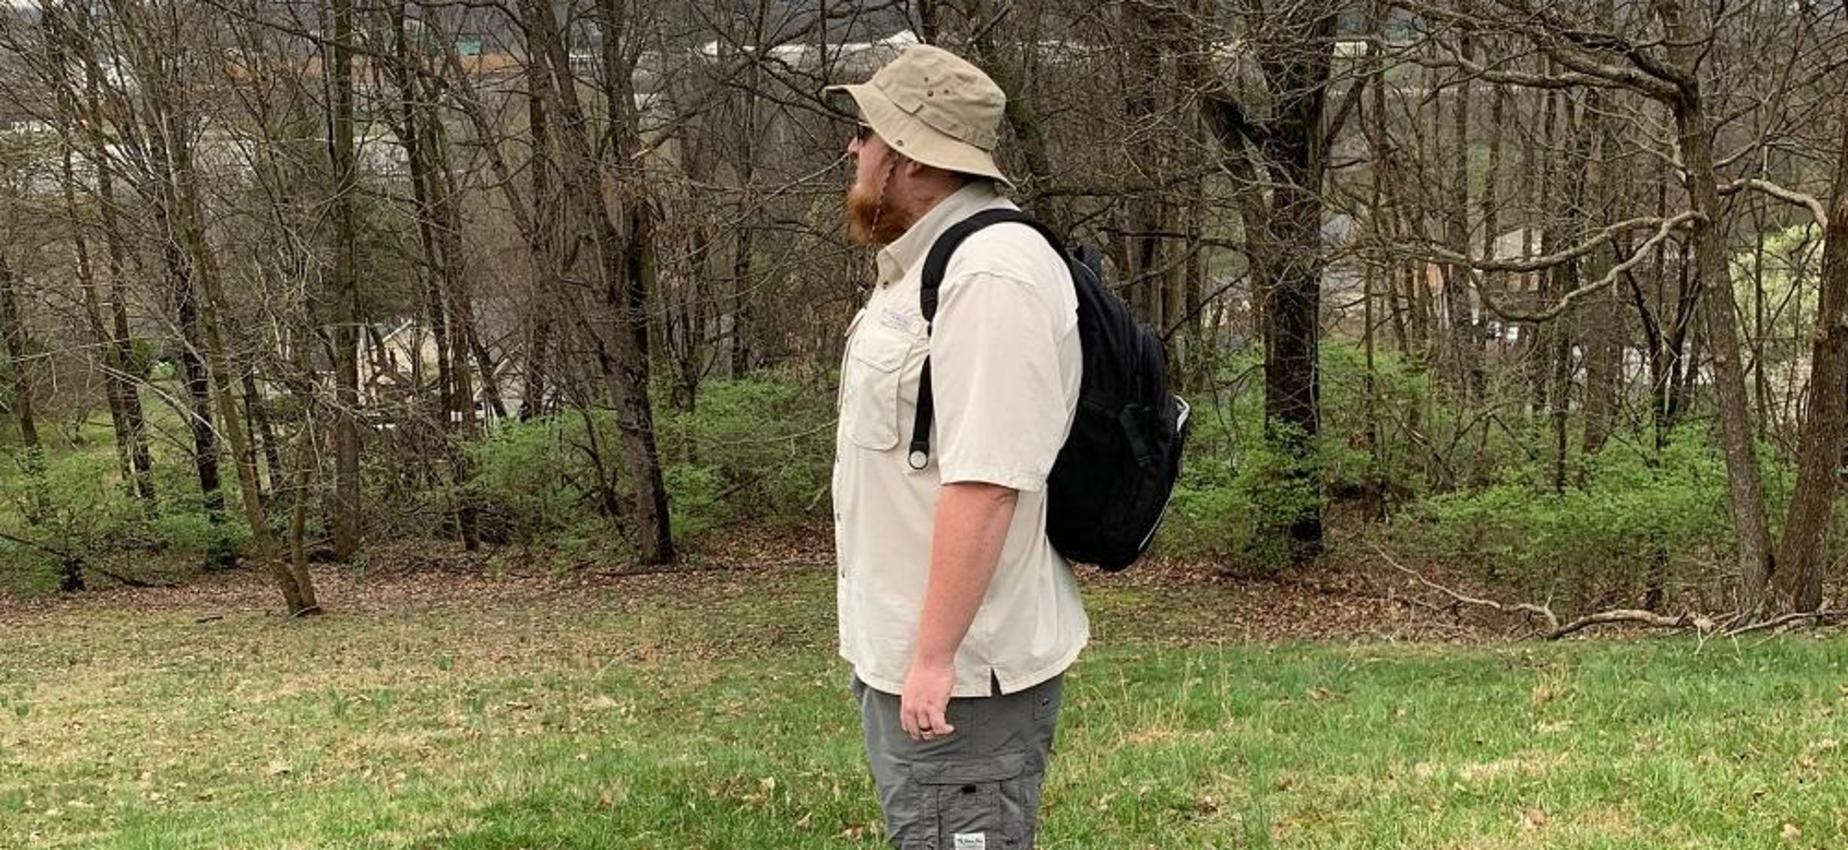 A man wearing a backpack stands in a wooded area.